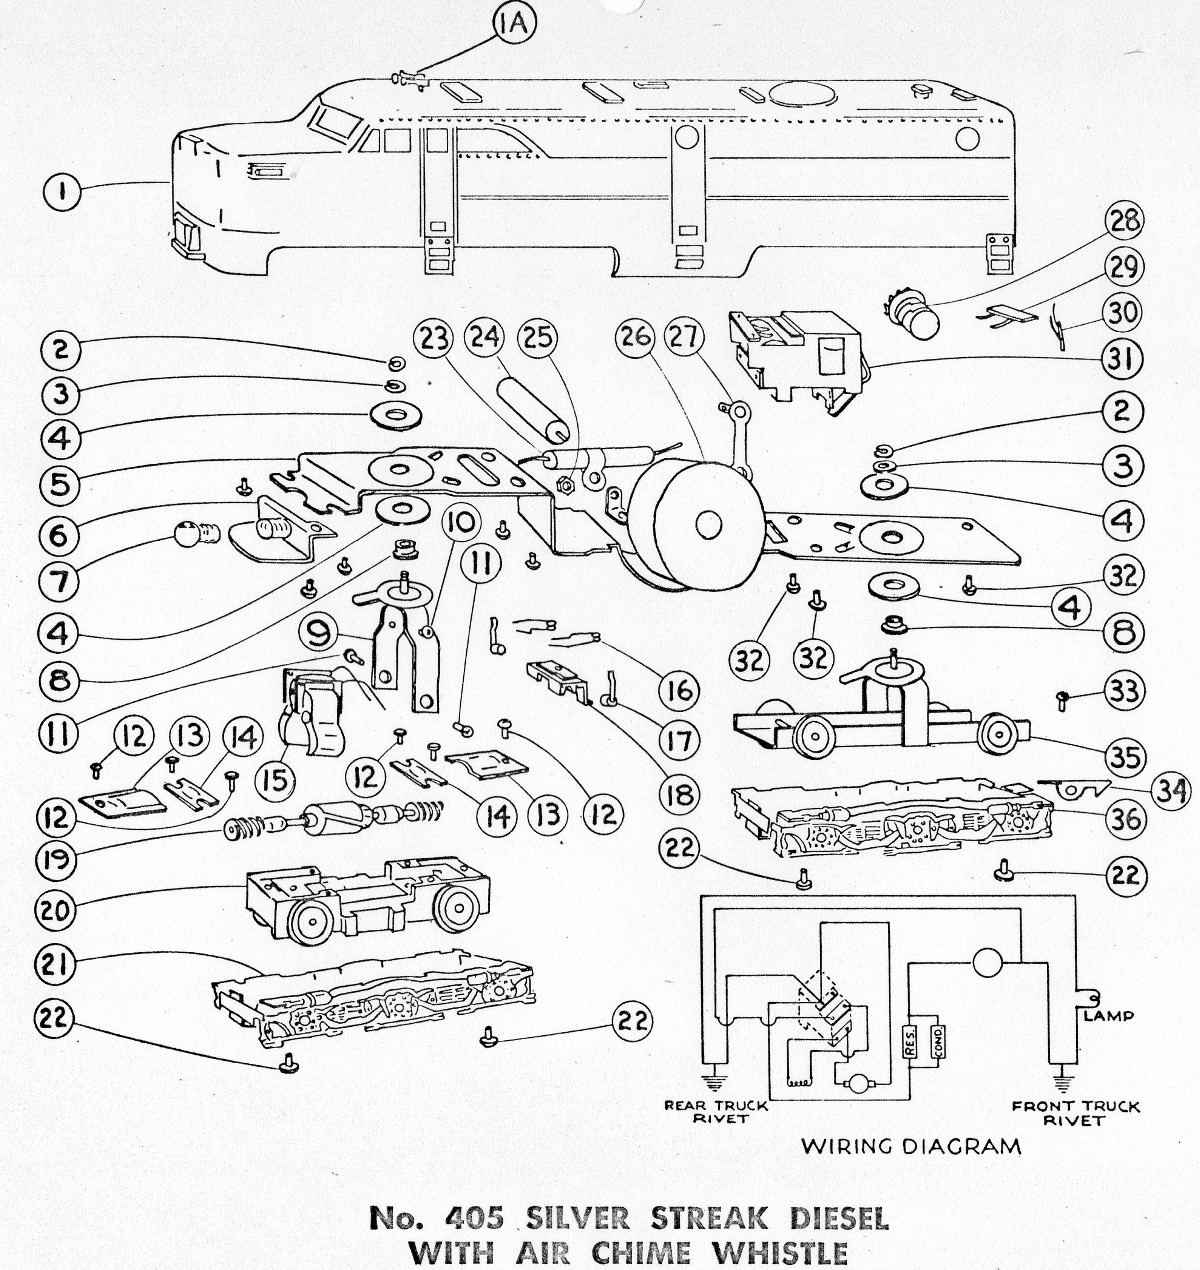 American Flyer Parts Diagrams American Flyer Parts